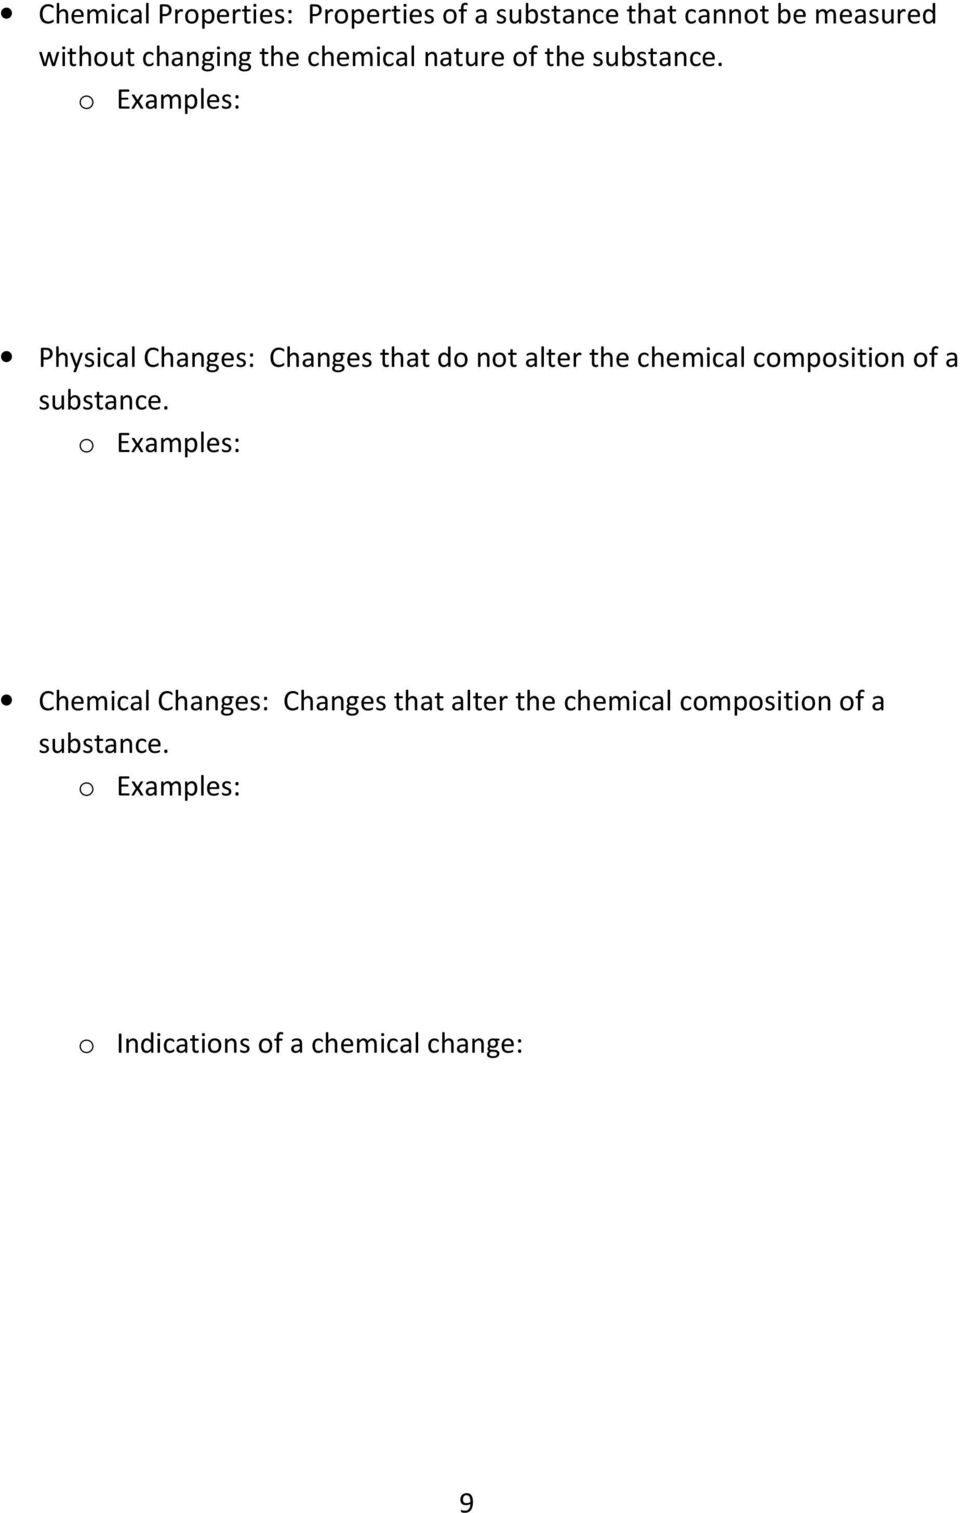 o Examples: Physical Changes: Changes that do not alter the chemical composition of a